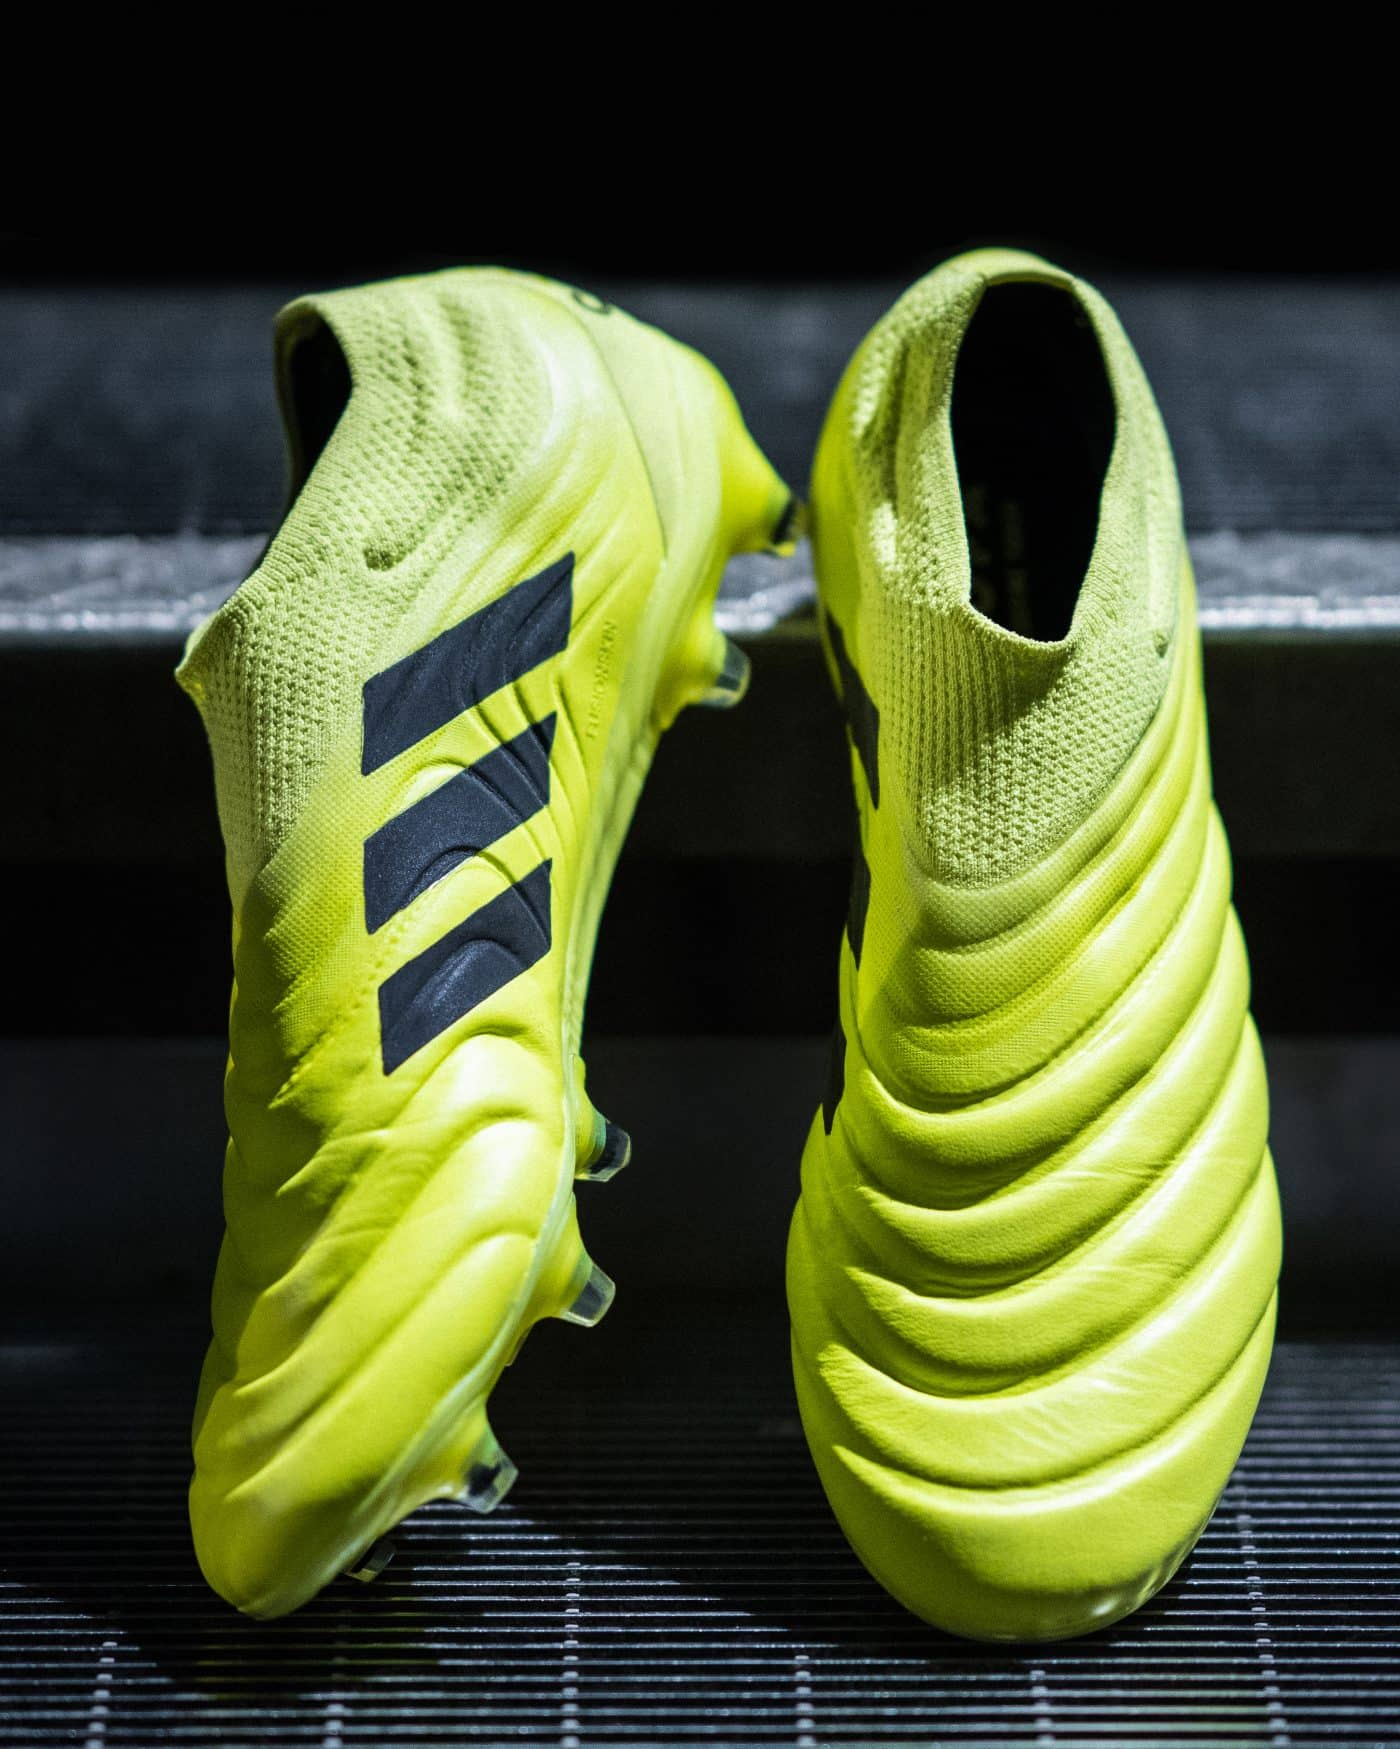 adidas-copa-19-pack-hard-wired-juillet-2019-6